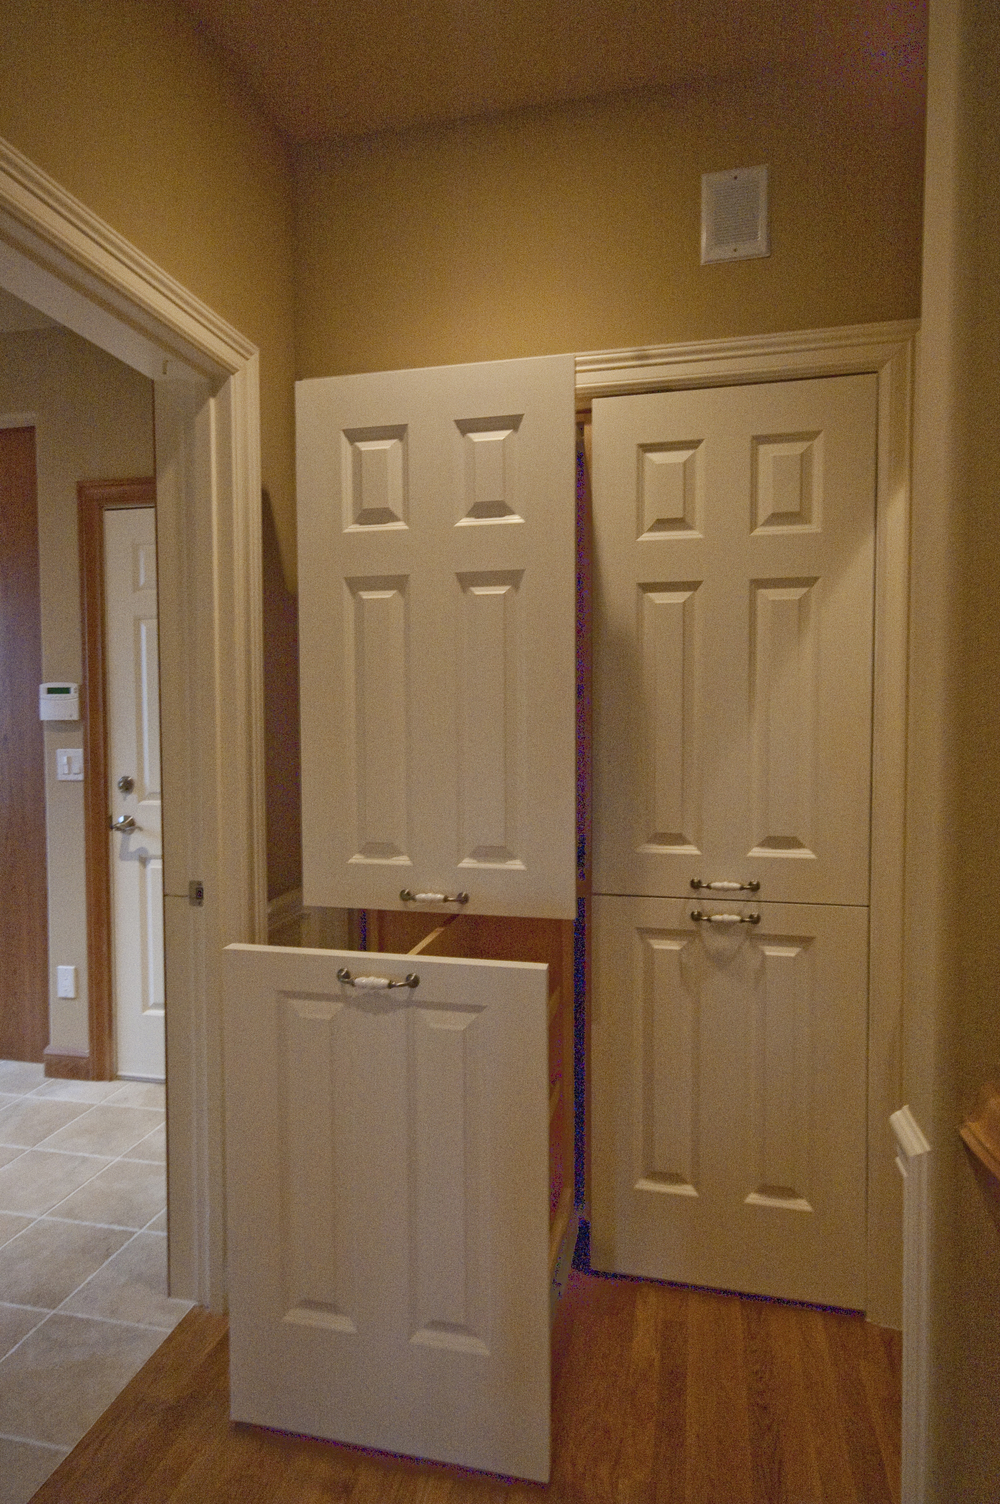 Custom full extension slide-out pantry from modified doors